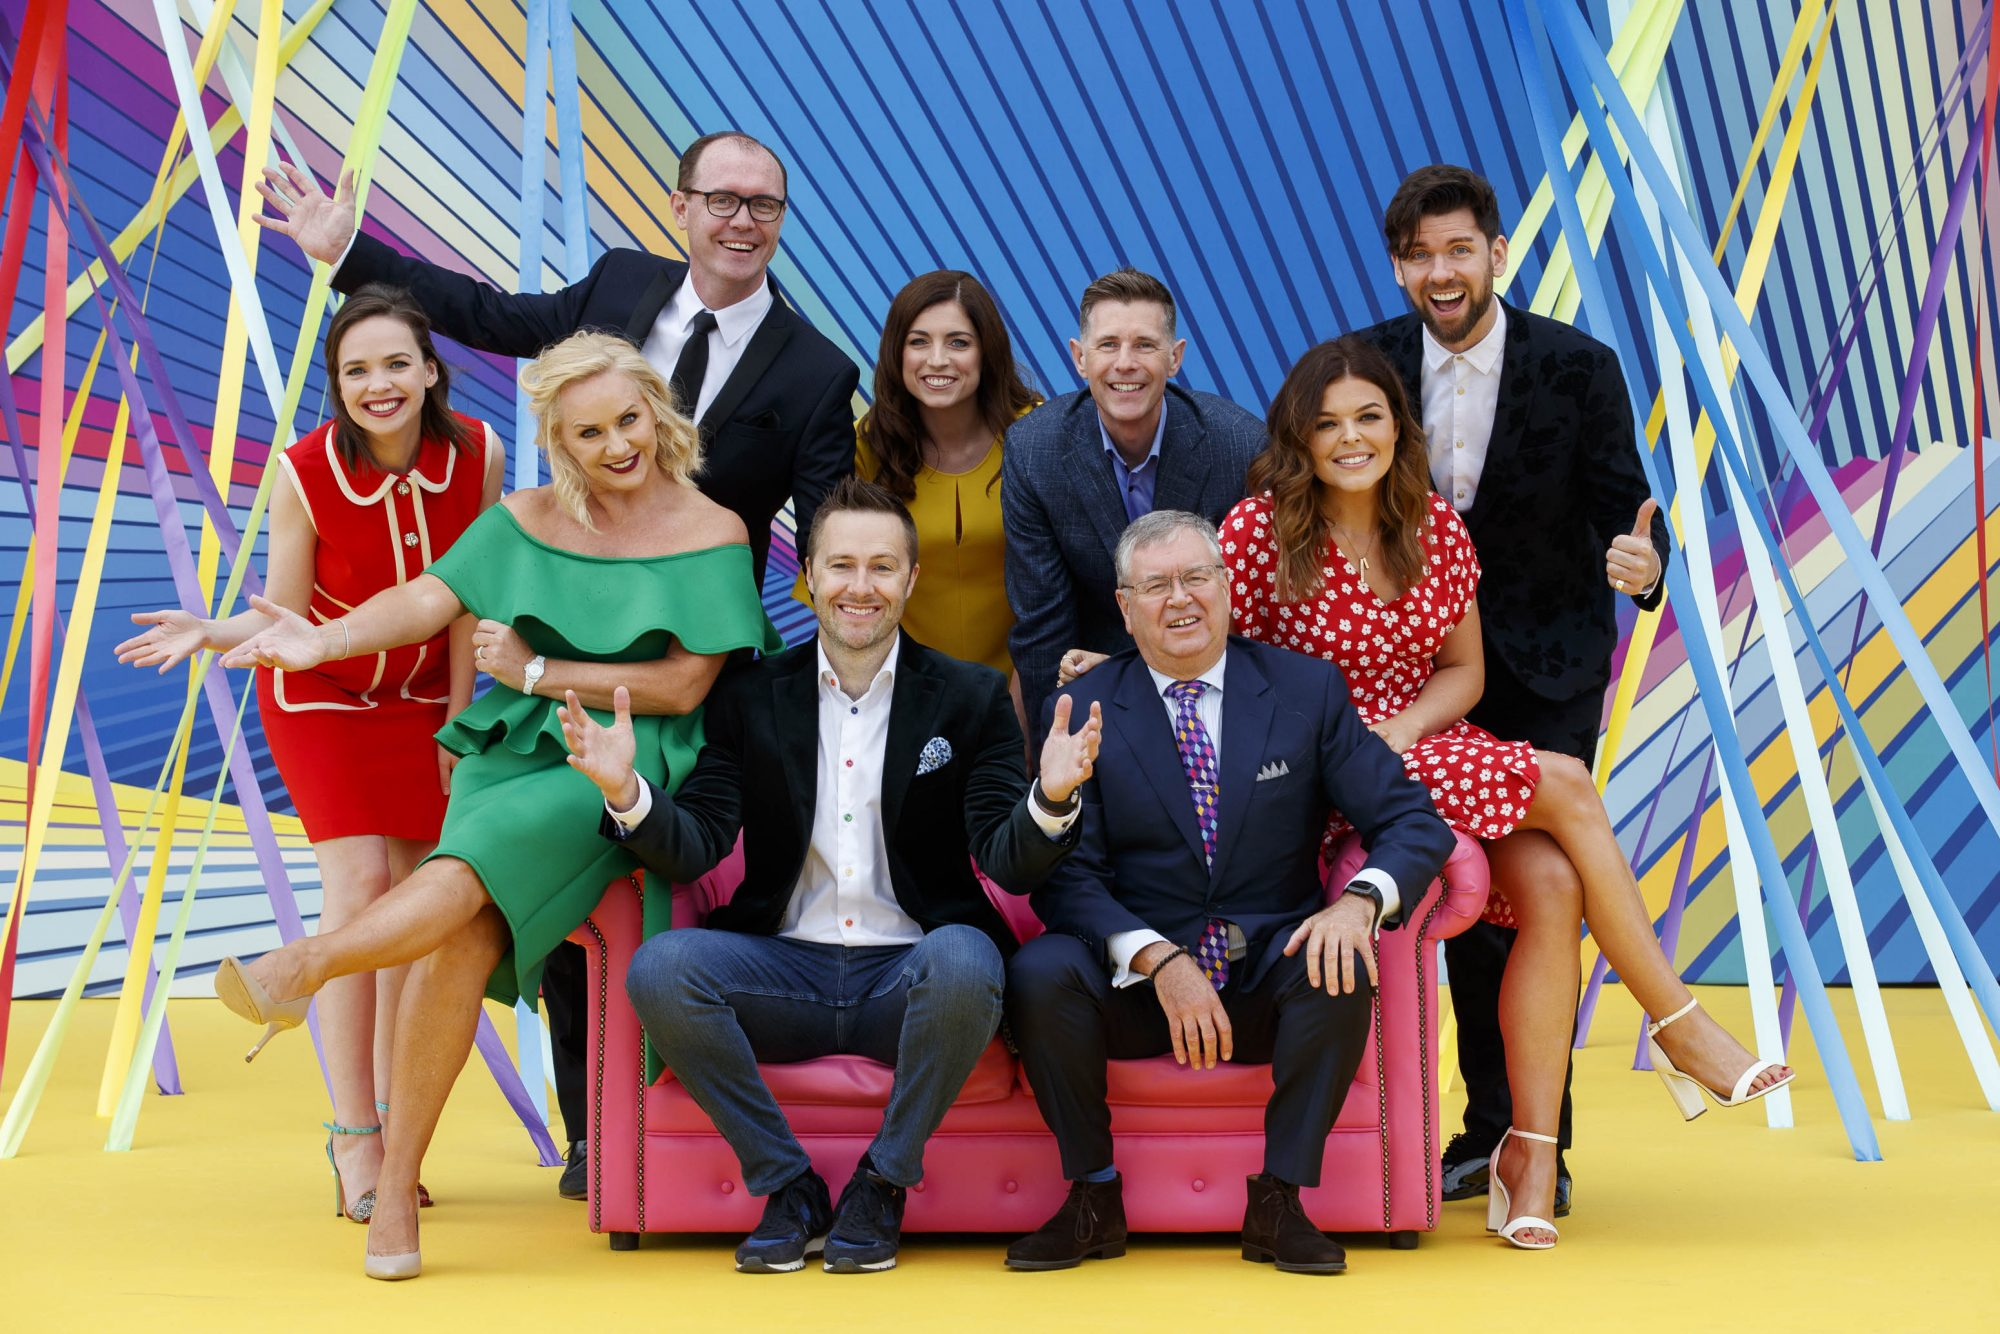 Eileen O'Higgins, Brian Redmond, Joanne Cantwell, Dermot Bannon and Eoghan McDermott with (front) Loraine Barry, Keith Barry and Joe Duffy and Doireann Garrihy as RTÉ today announced a slate of new impactful Irish programming, star signings and a strong focus on climate as part of its upcoming new season. Picture: Andres Poveda